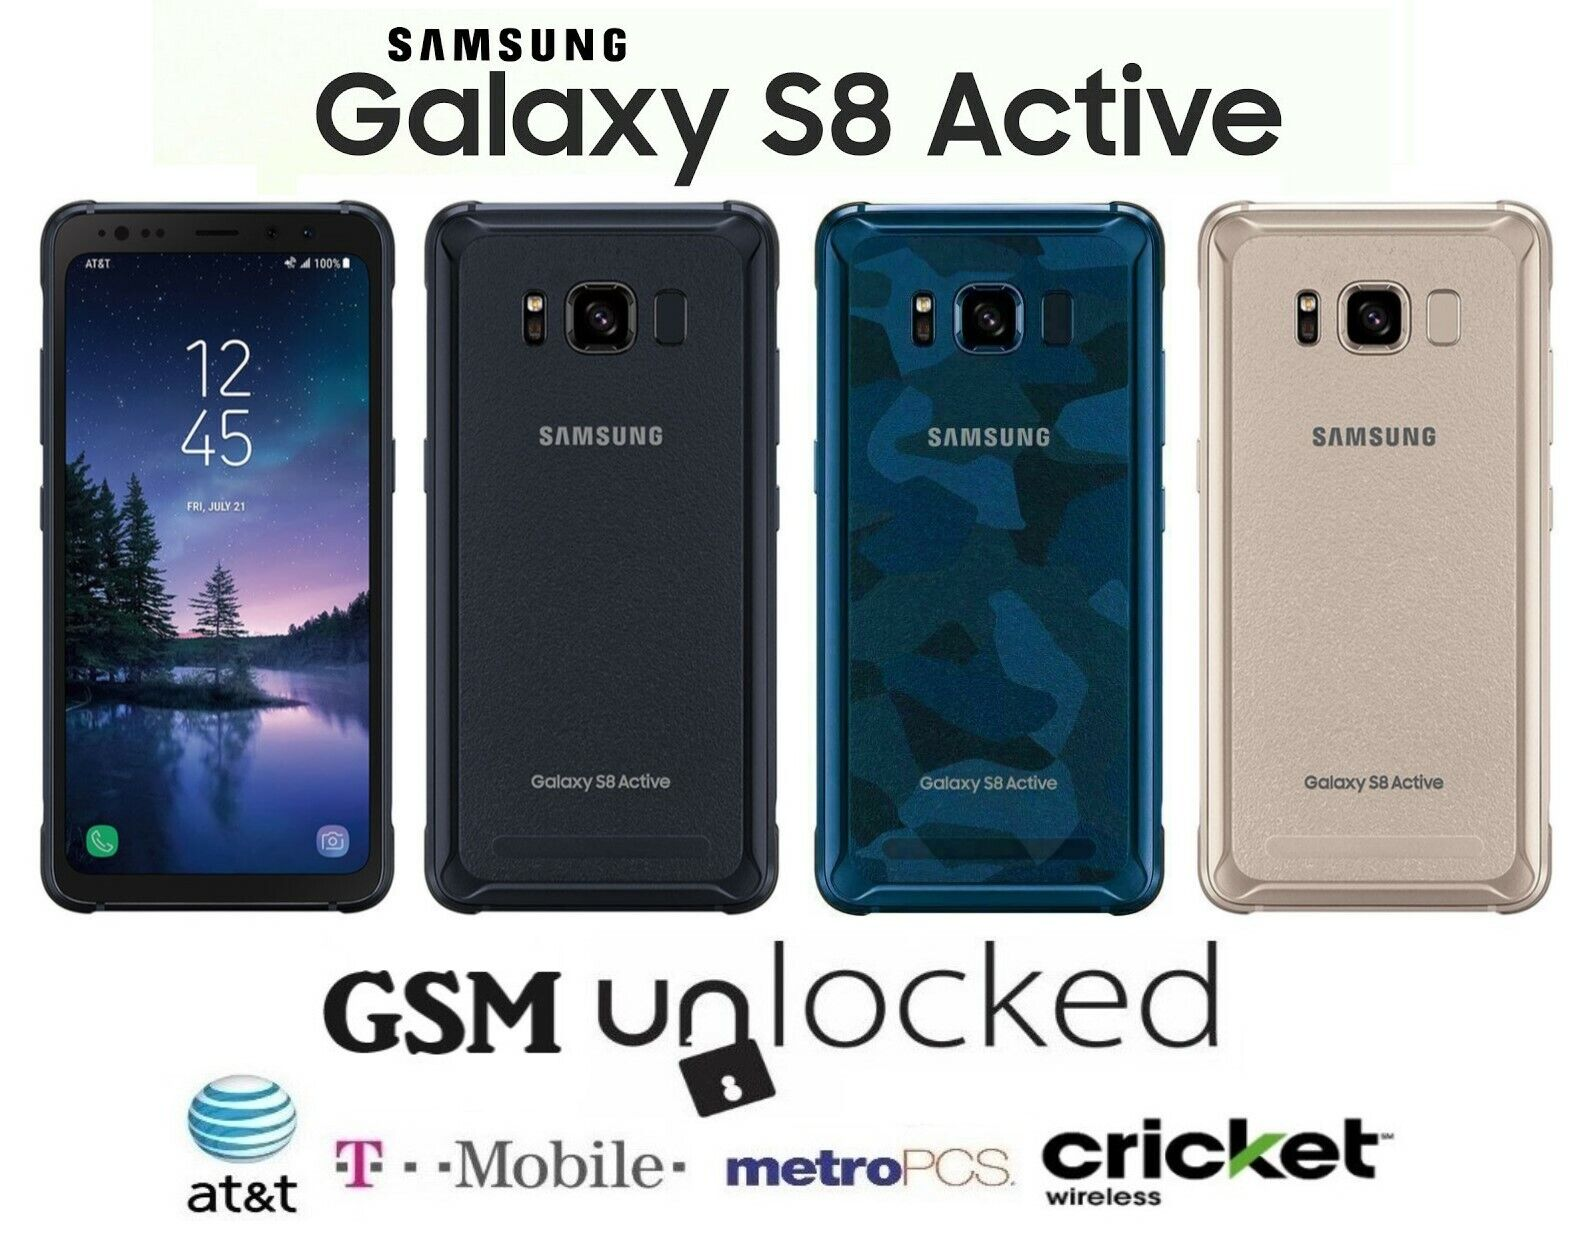 Android Phone - Samsung Galaxy S8 Active - 64GB (GSM Unlocked) T-Mobile AT&T MetroPCS Cricket